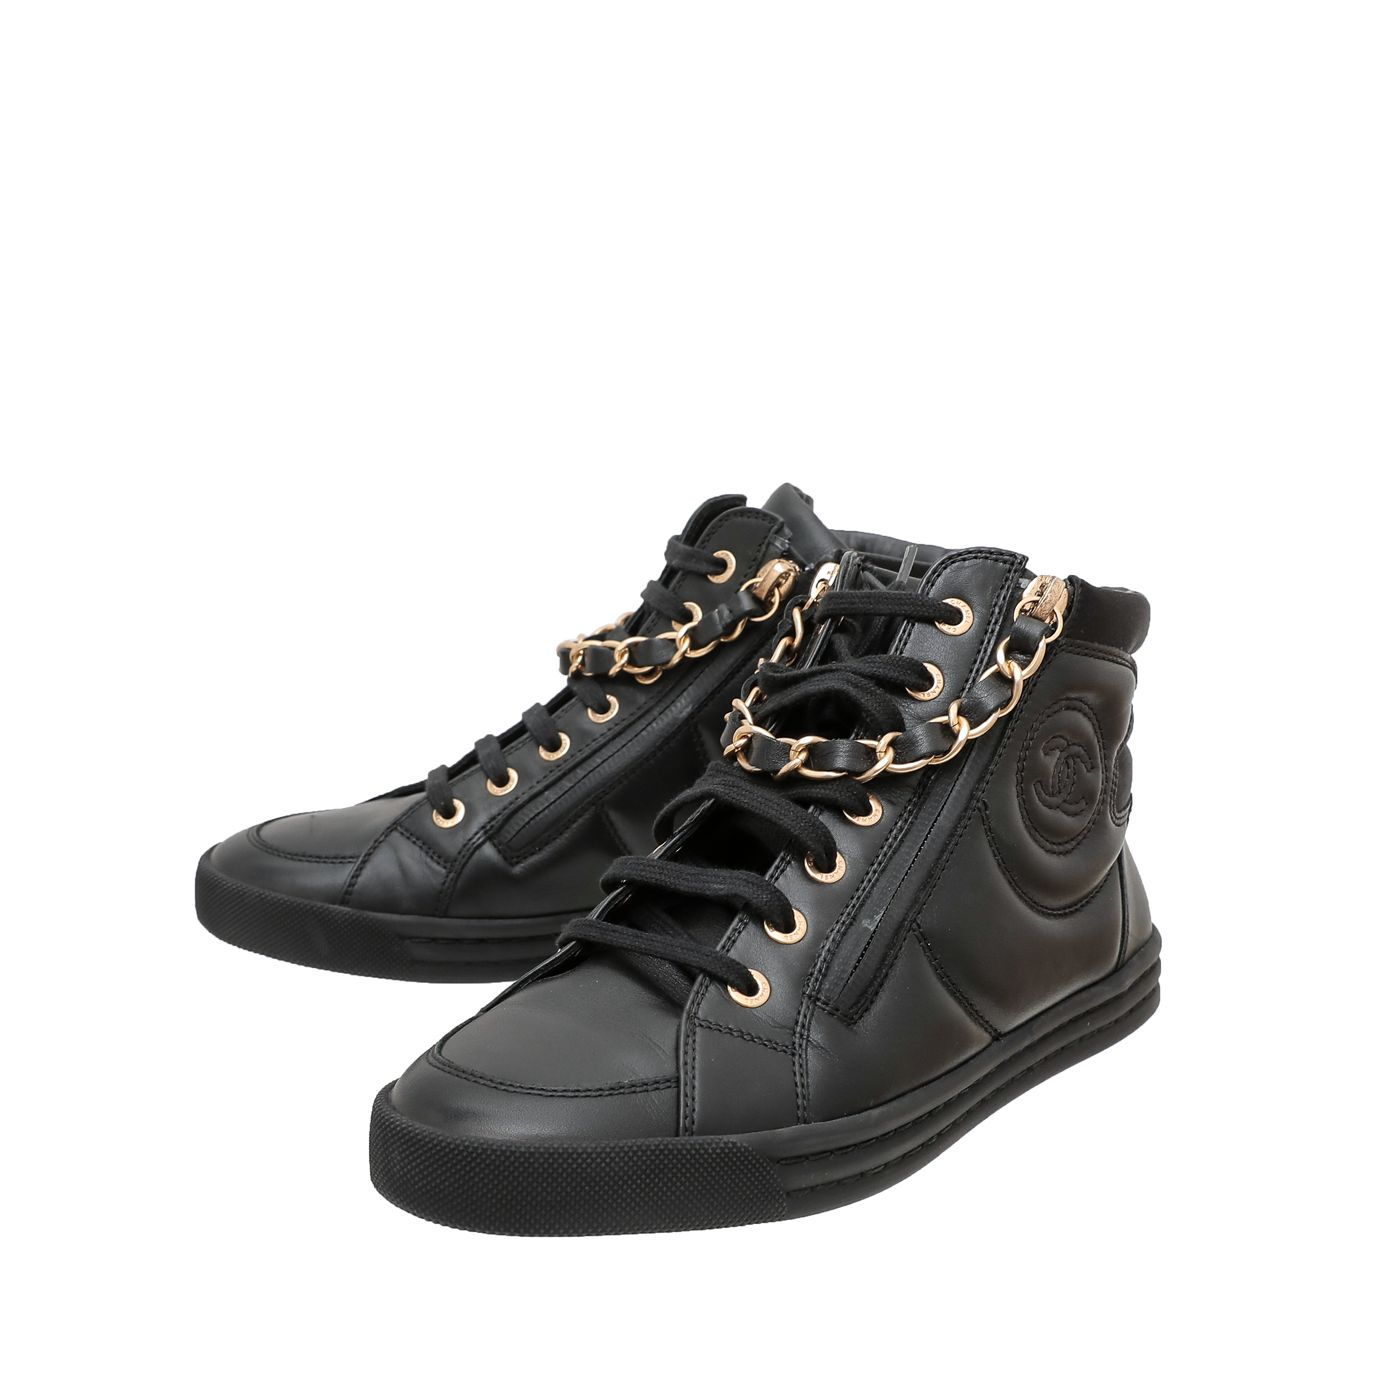 Chanel Black Double Zip Chain Detail High Top Sneakers 36